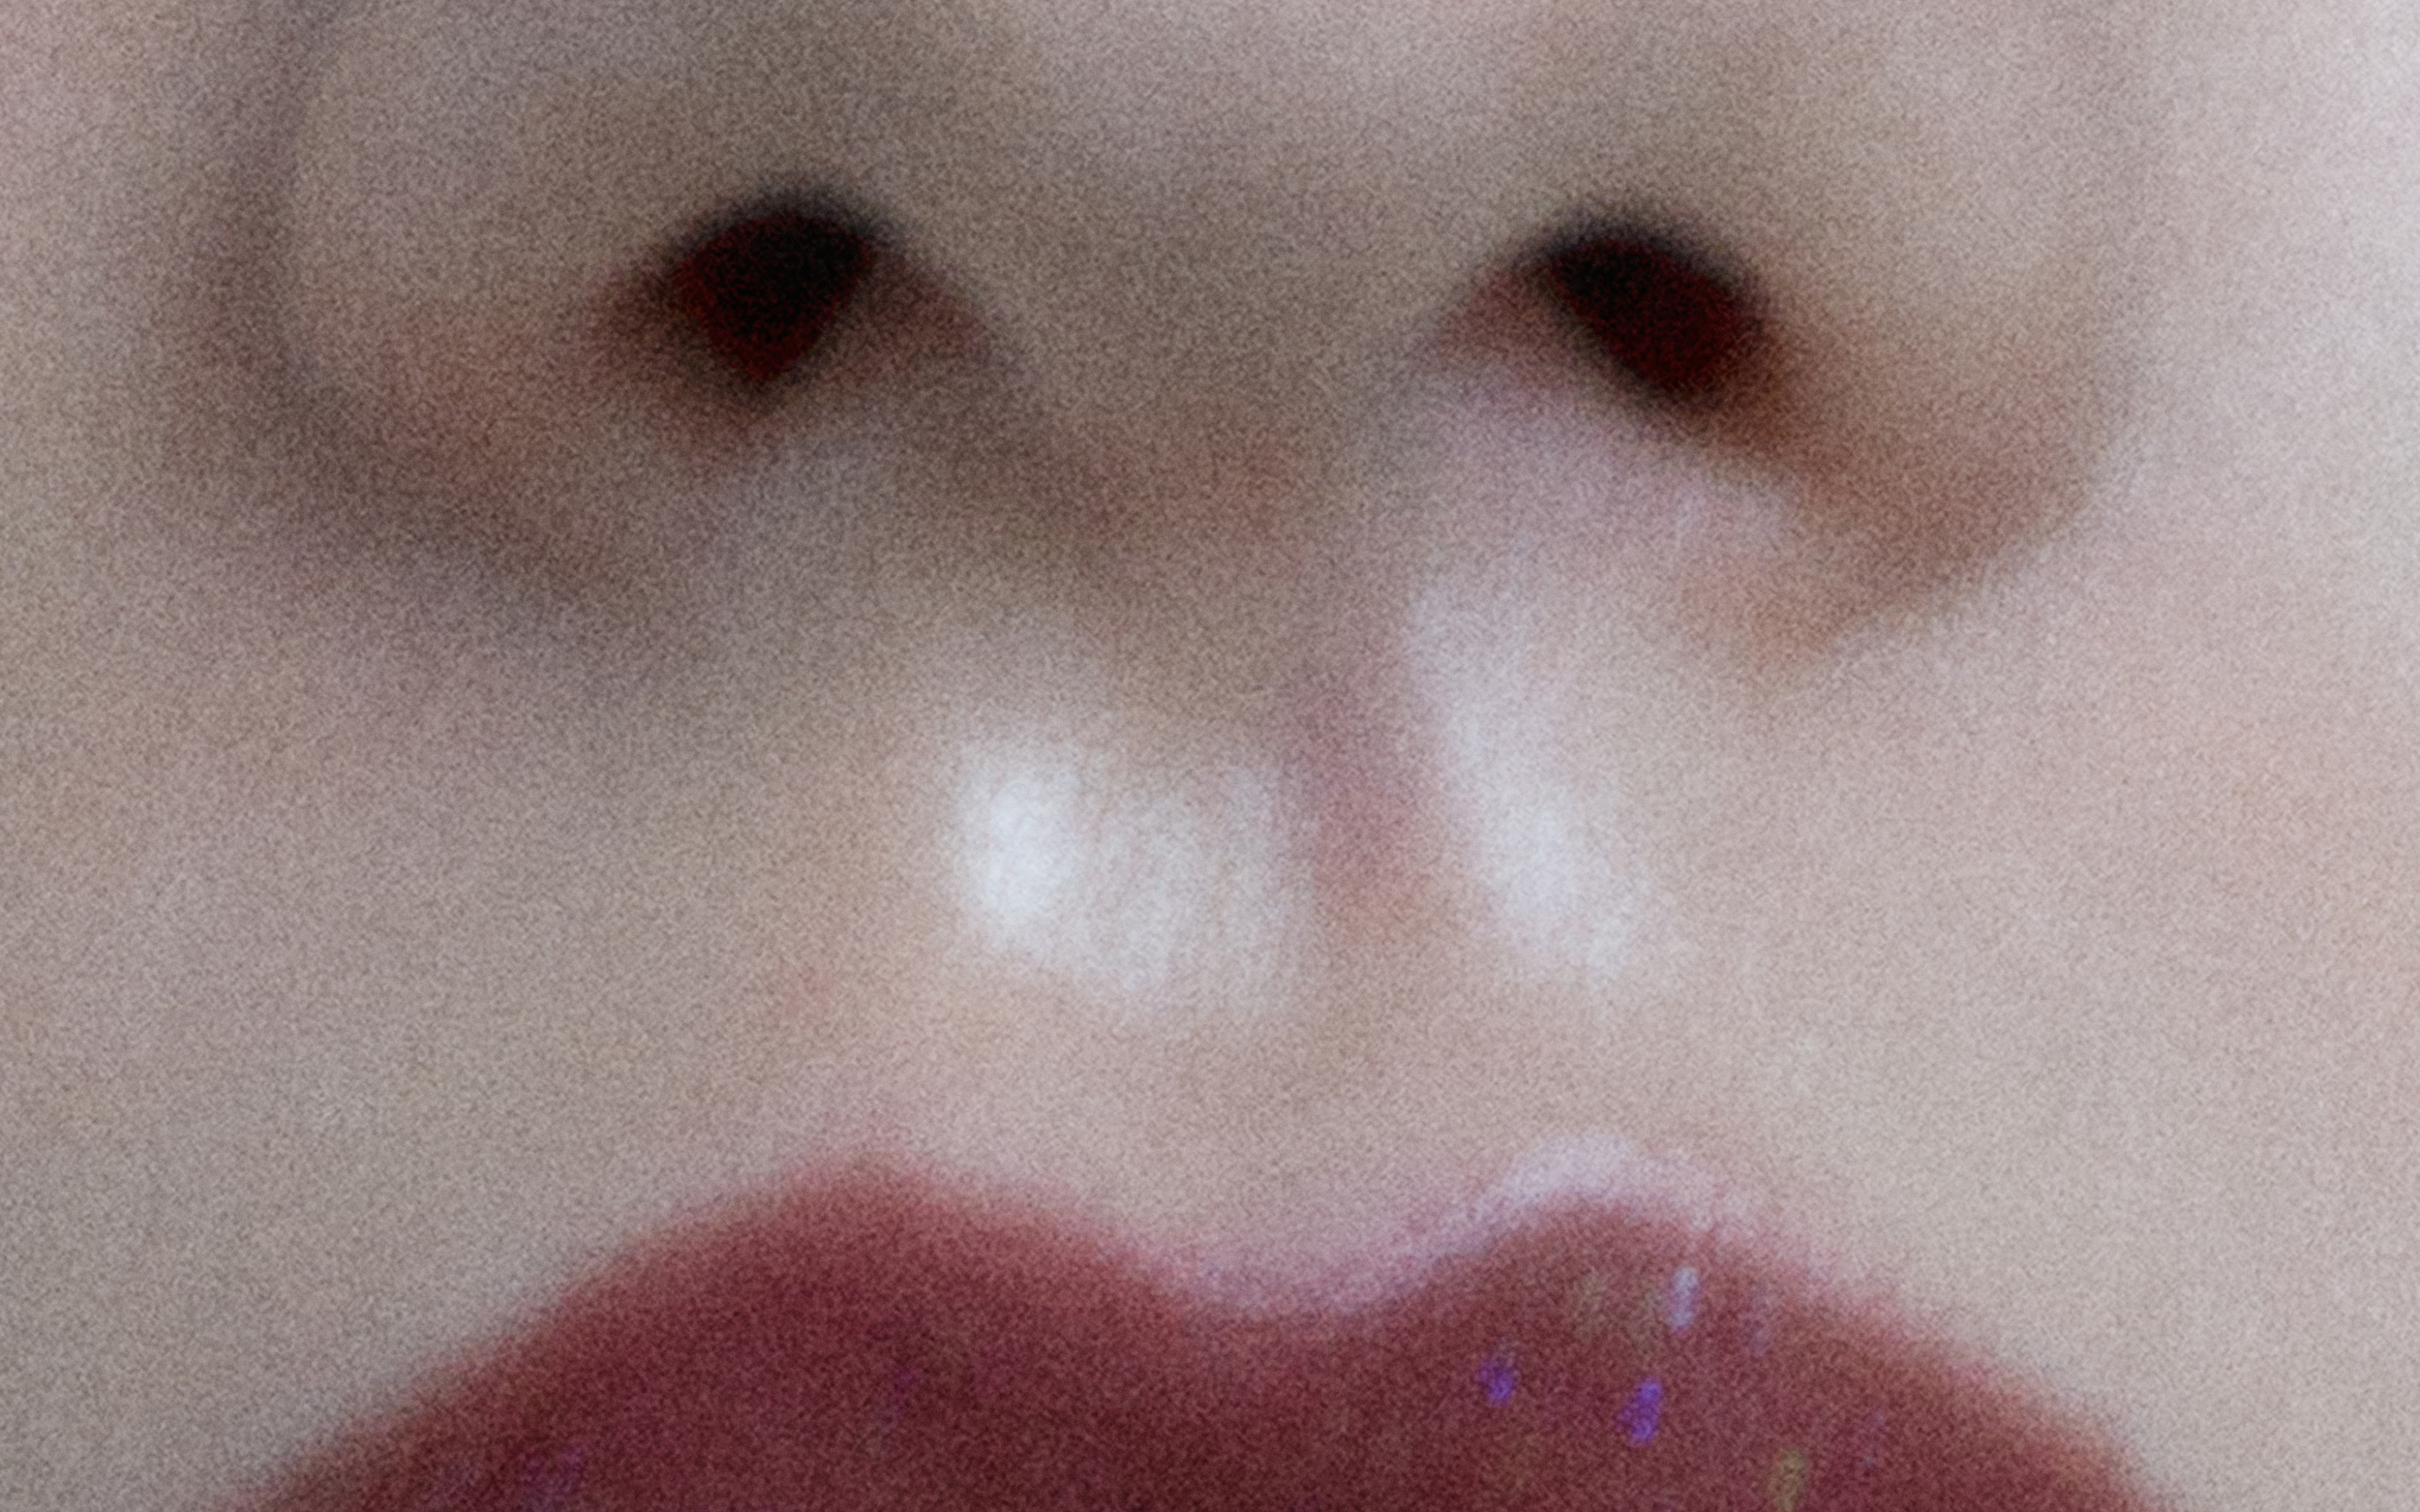 dominik_tarabanski_-_calendar_2015_lato_no_layout_08_crop.jpg